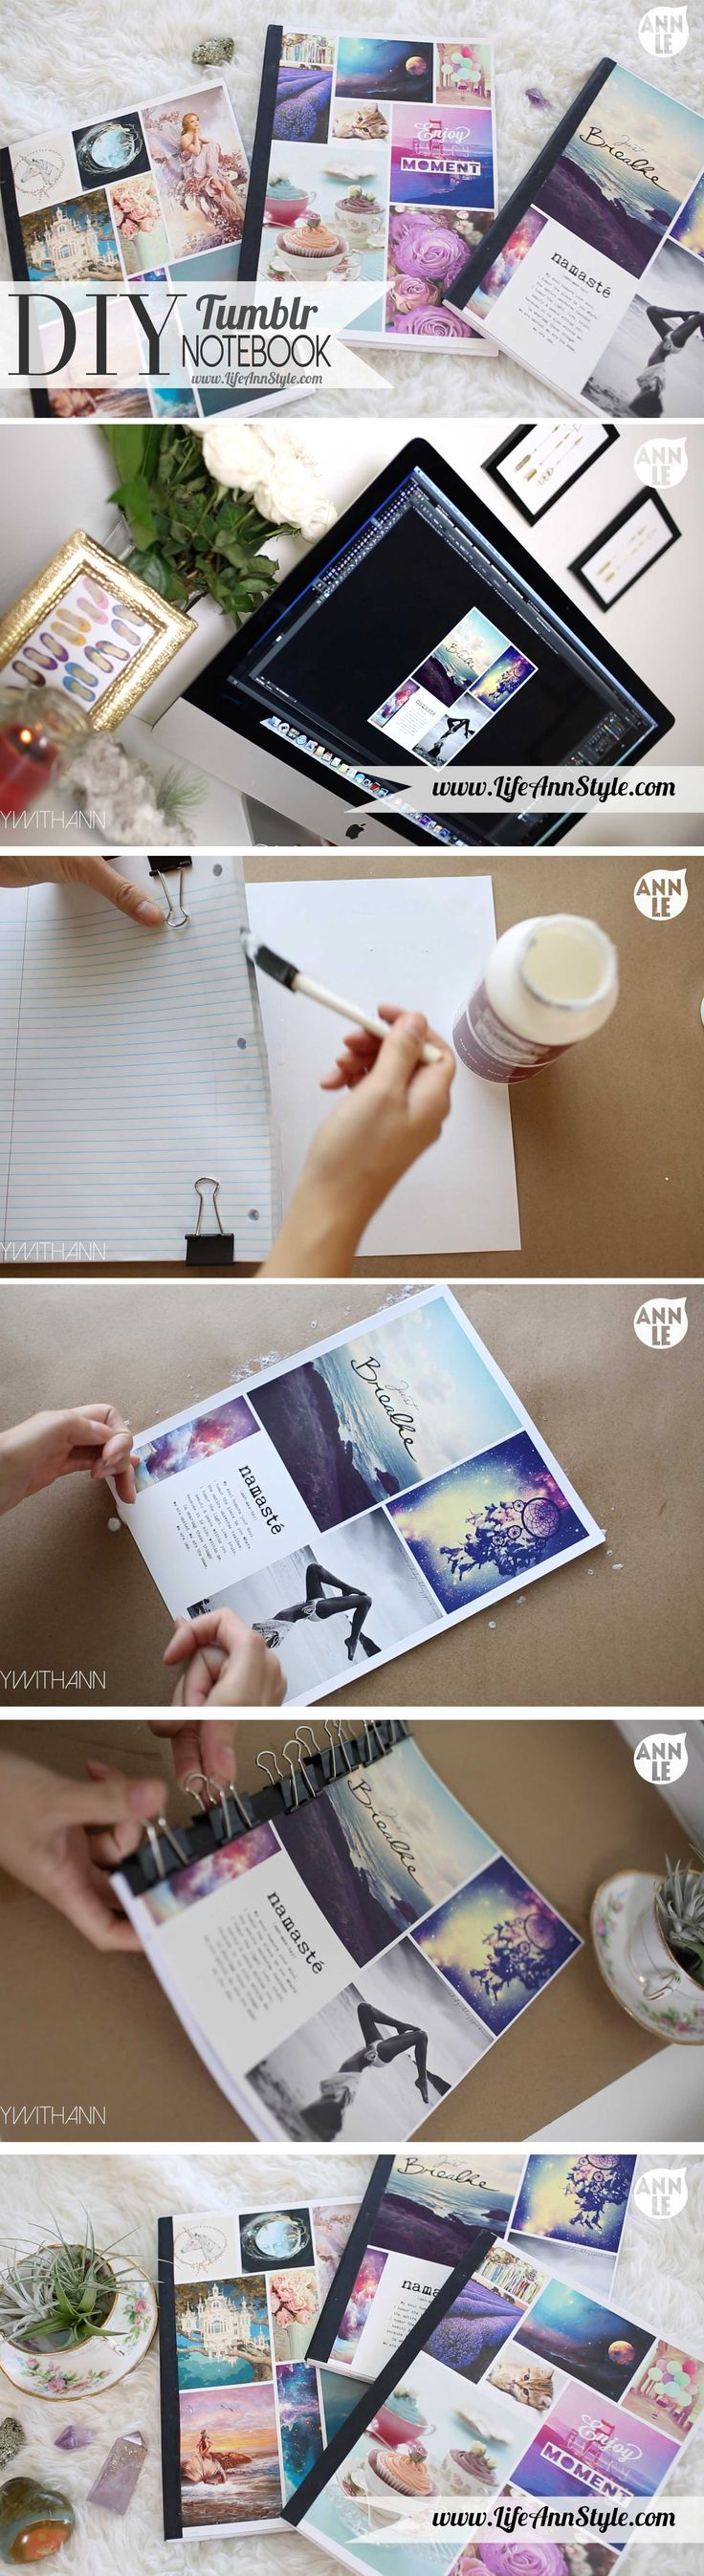 I'll be making me some of these next week! DIY Tumblr Inspired Notebooks! | lifestyle #BacktoSchool #DIY #LifeAnnStyle